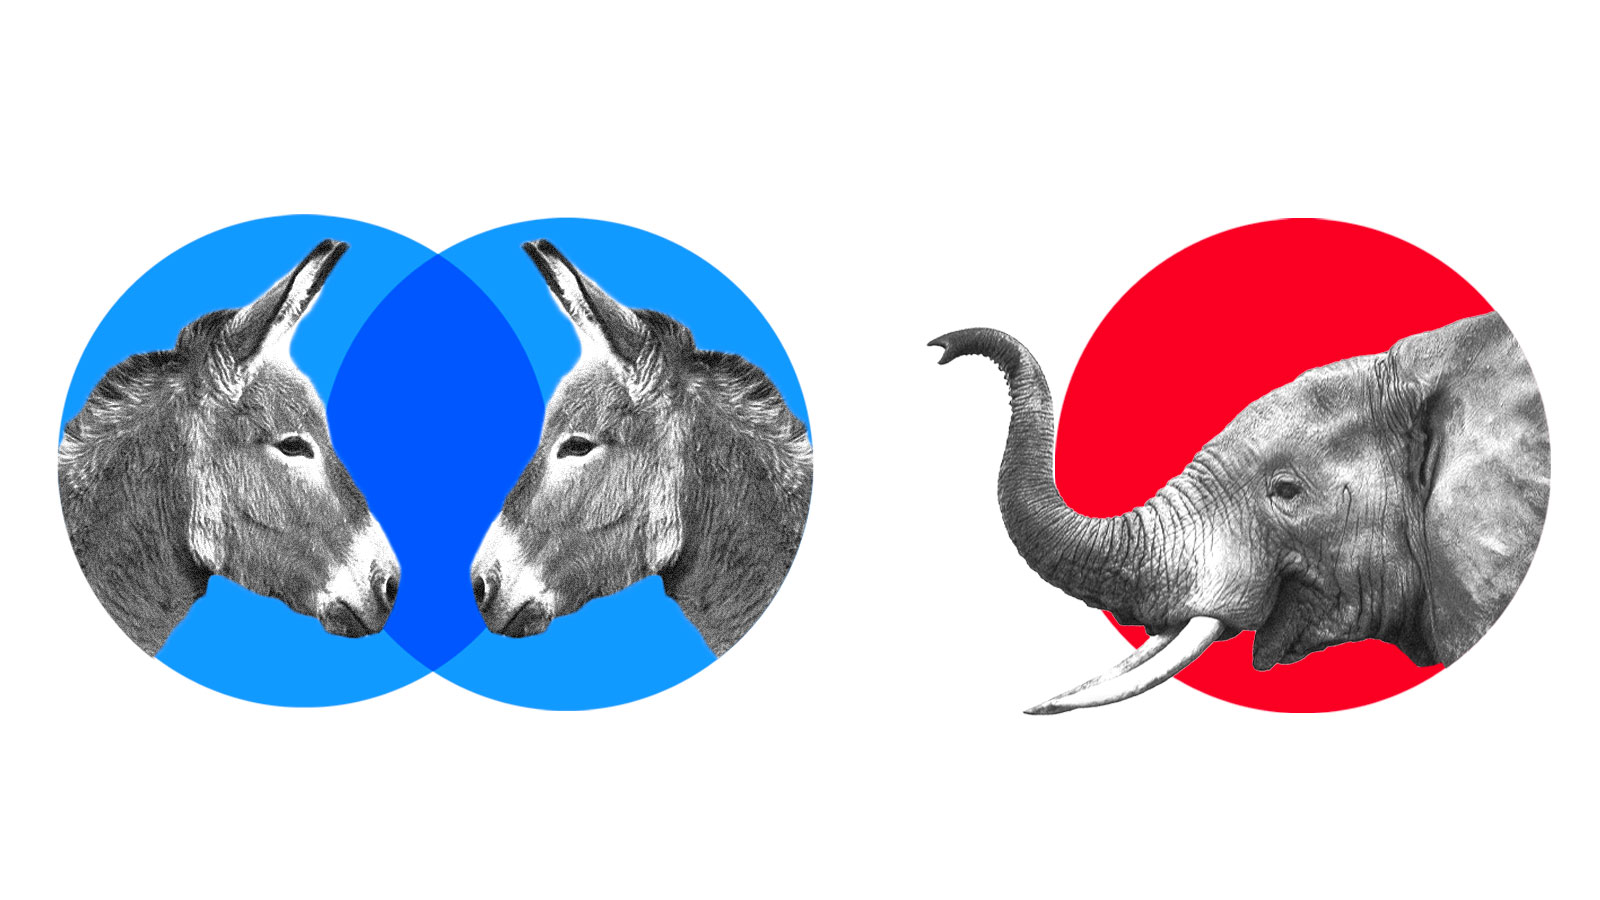 Collage: Two donkeys in two blue intersecting circles and an elephant in one red circle